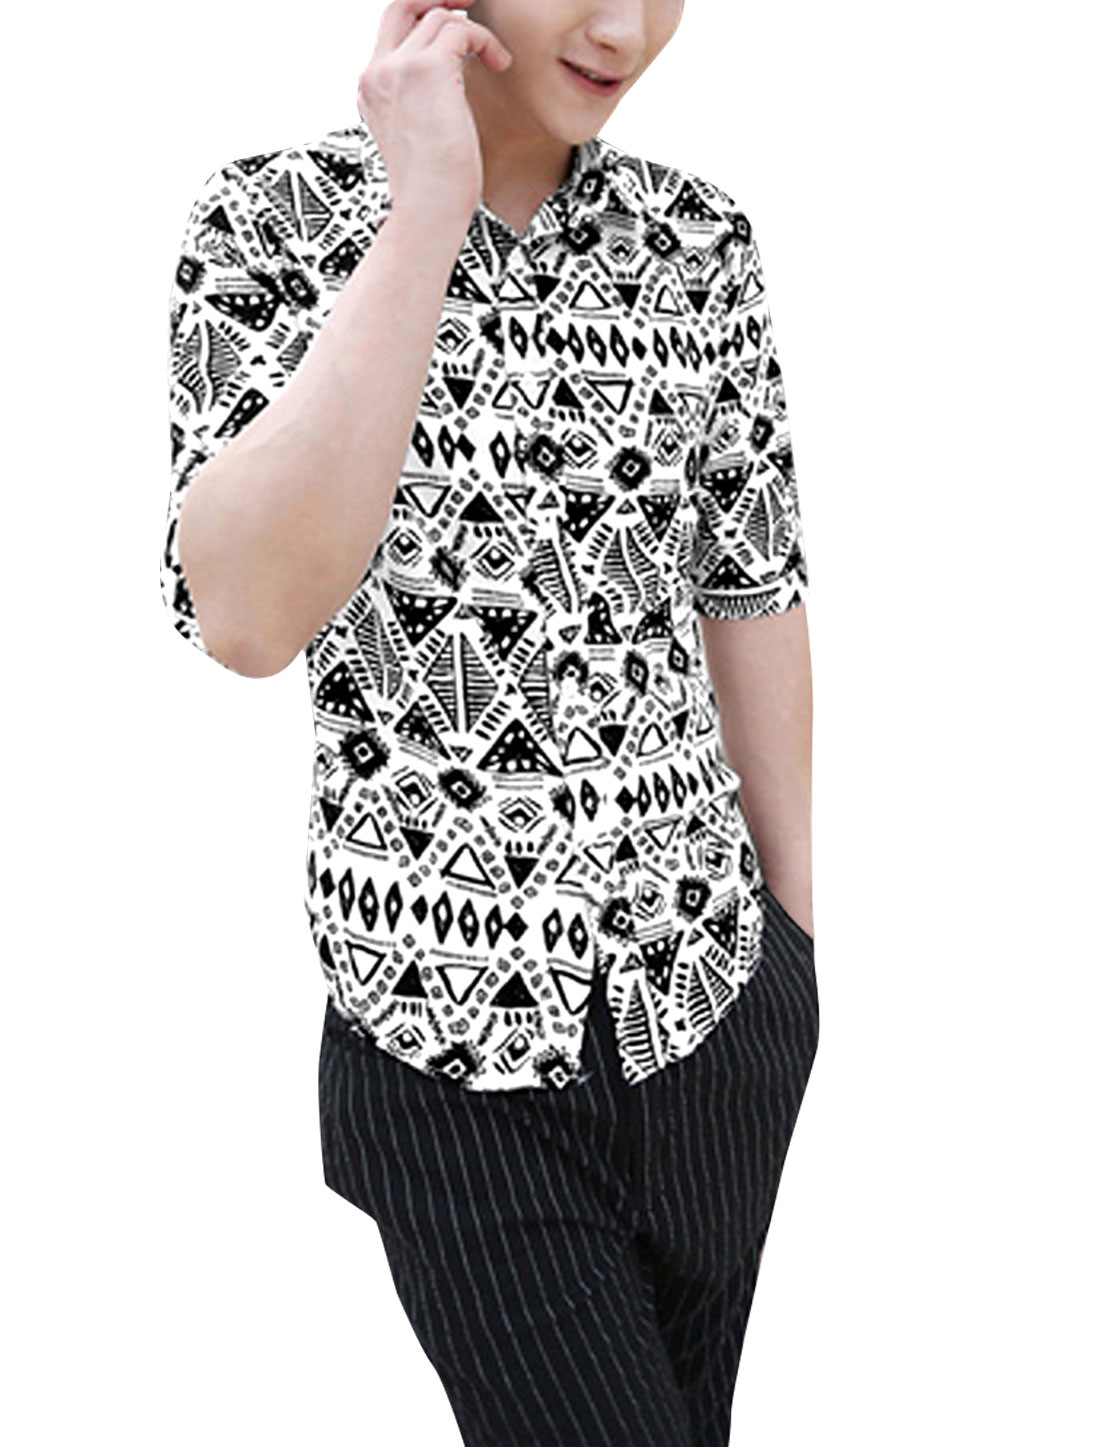 Men Point Collar Button Up Front Geometric Prints Shirt White Black M